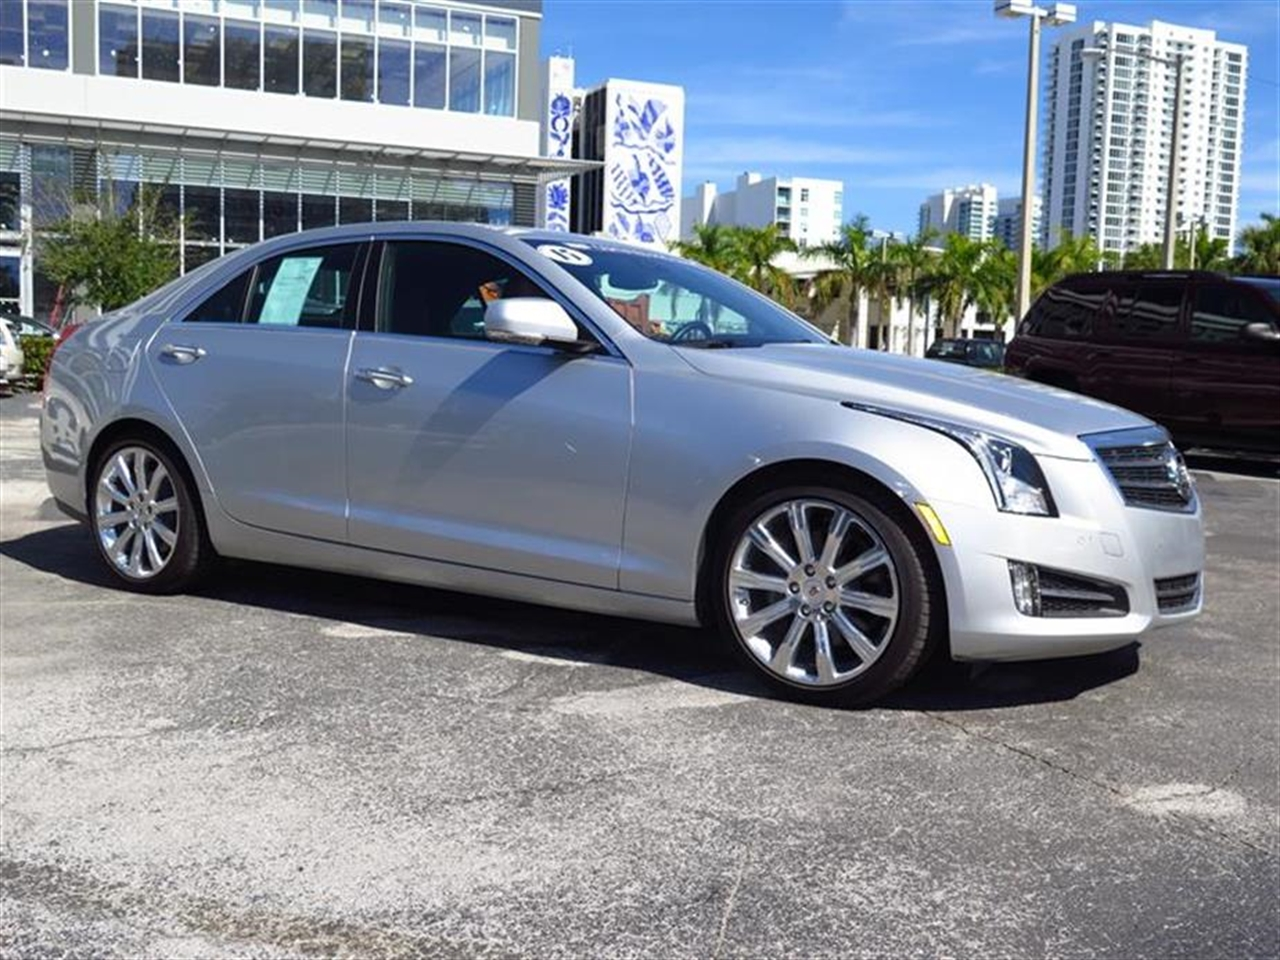 2013 CADILLAC ATS 4dr Sdn 20L Premium RWD 9720 miles Adaptive Remote Start Not available with